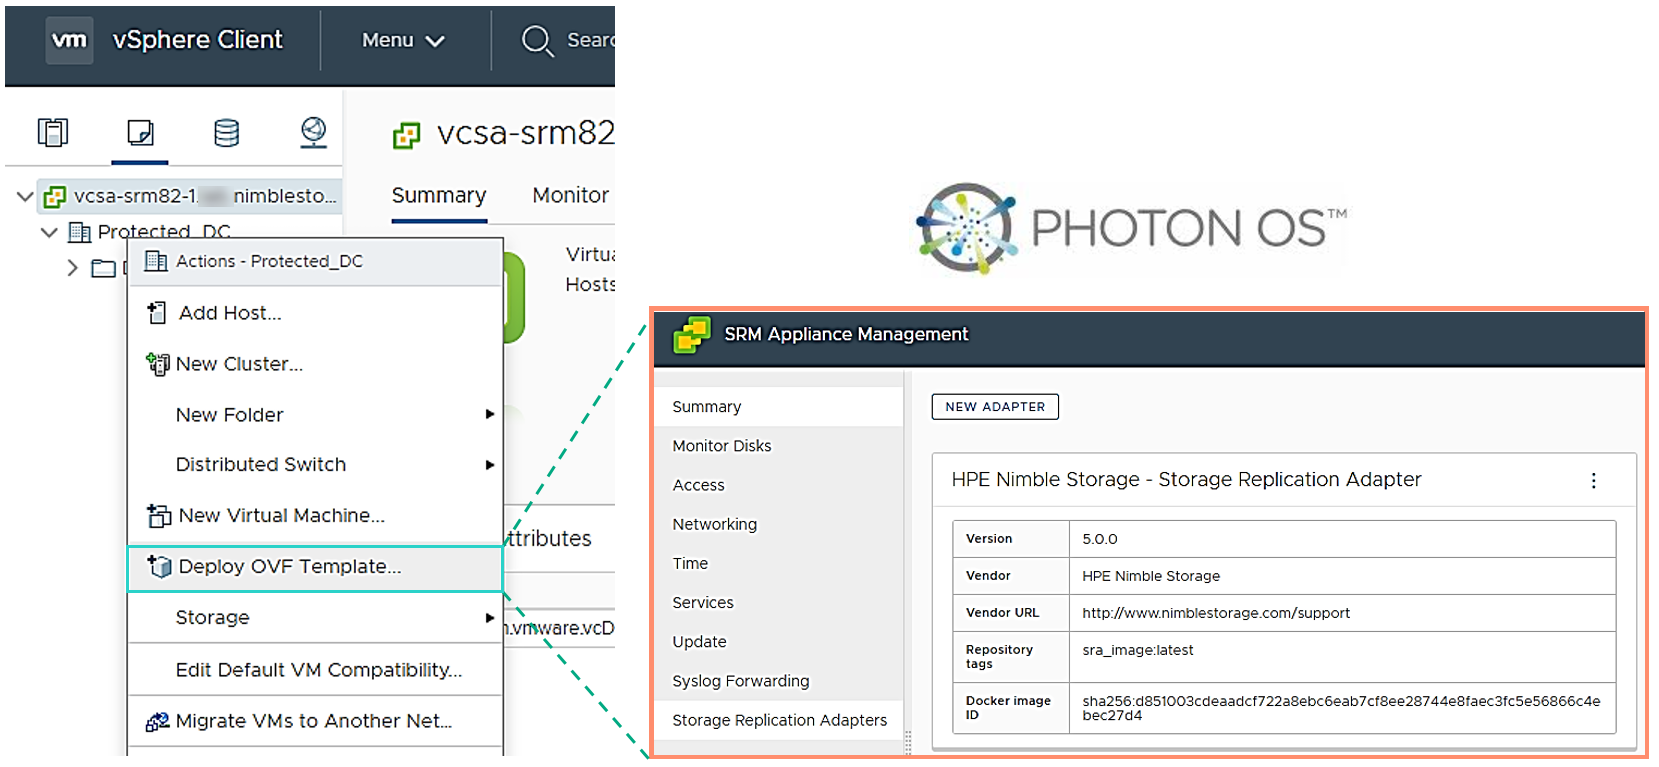 An introduction to VMware SRM 5 2 & HPE Nimble Storage SRA 5 0 0